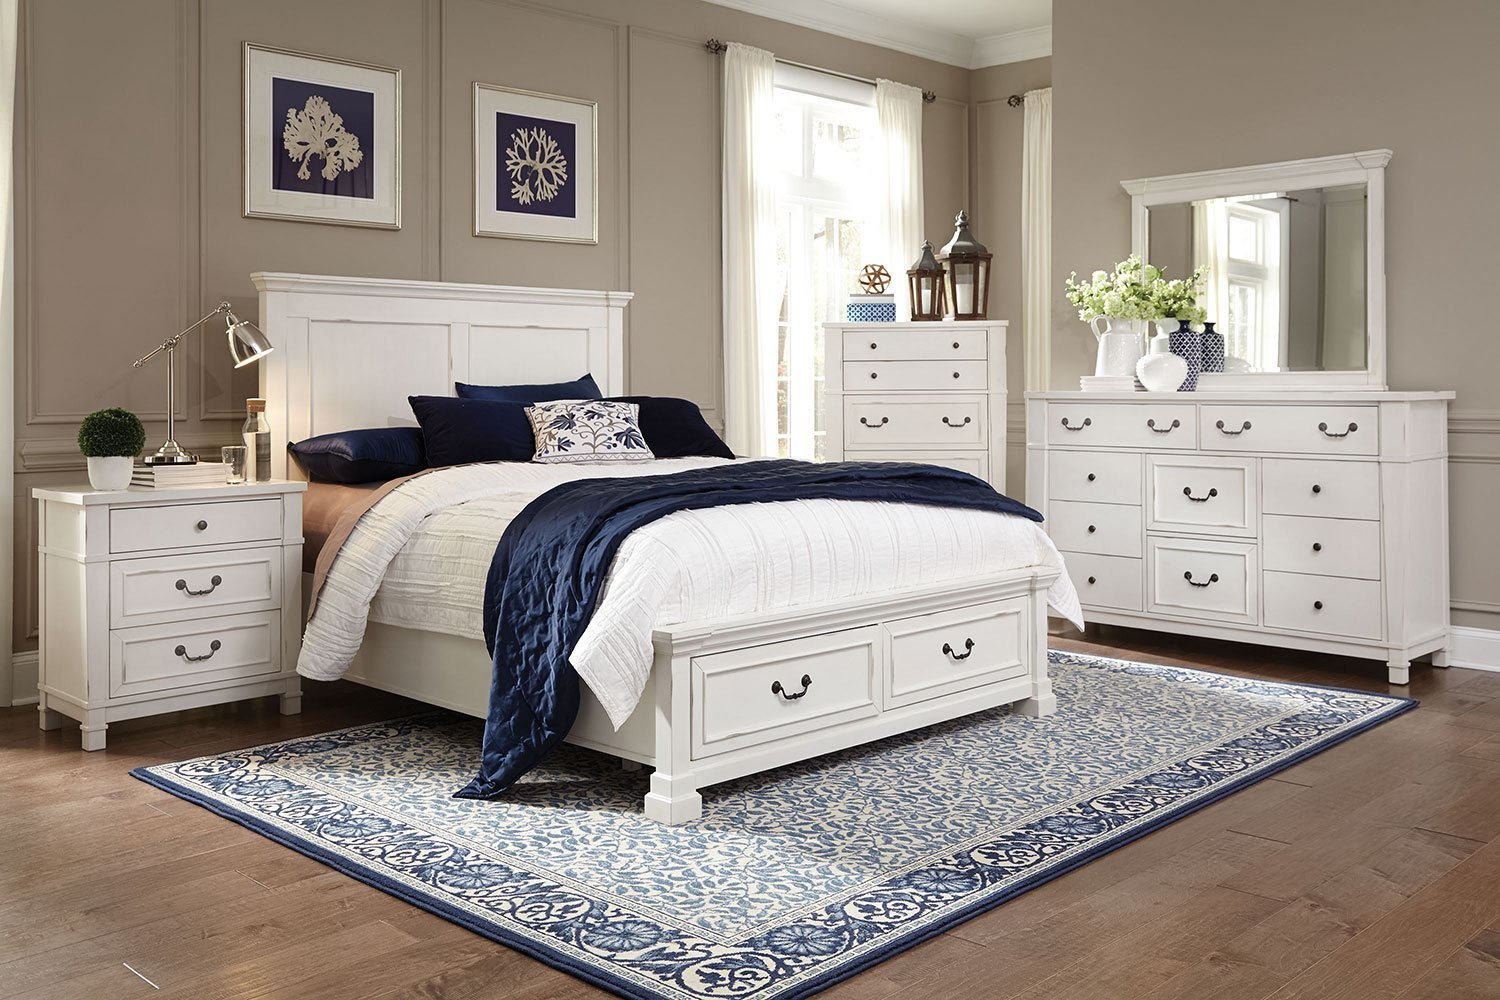 Best Taryn 4 Piece Queen Storage Bedroom Set Antique White With Pictures